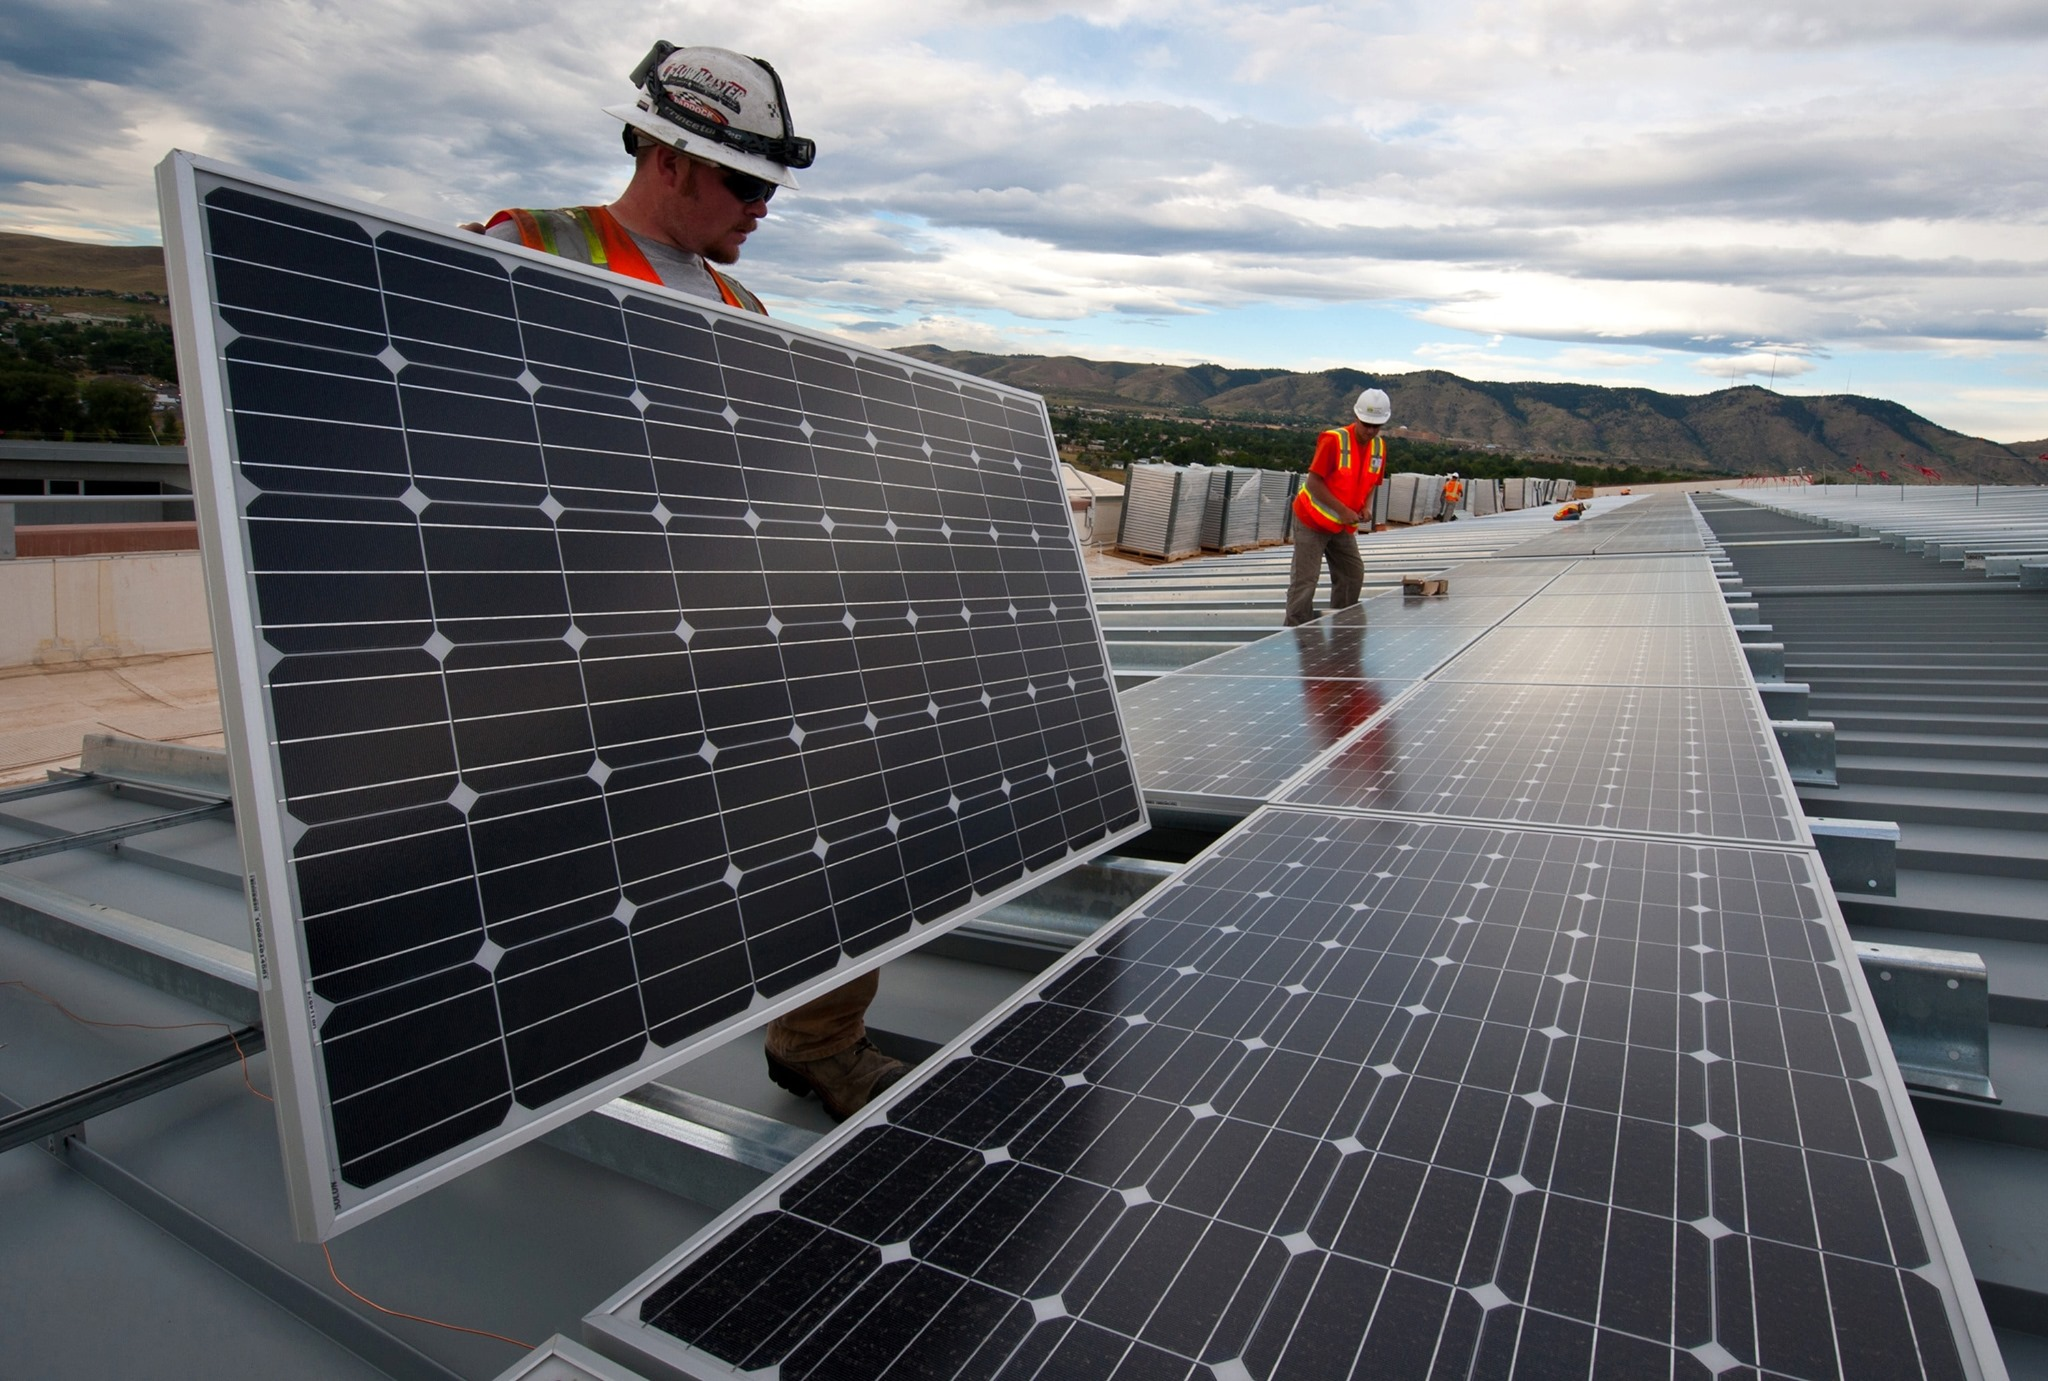 New building codes under review not tough enough on energy efficiency, report warns